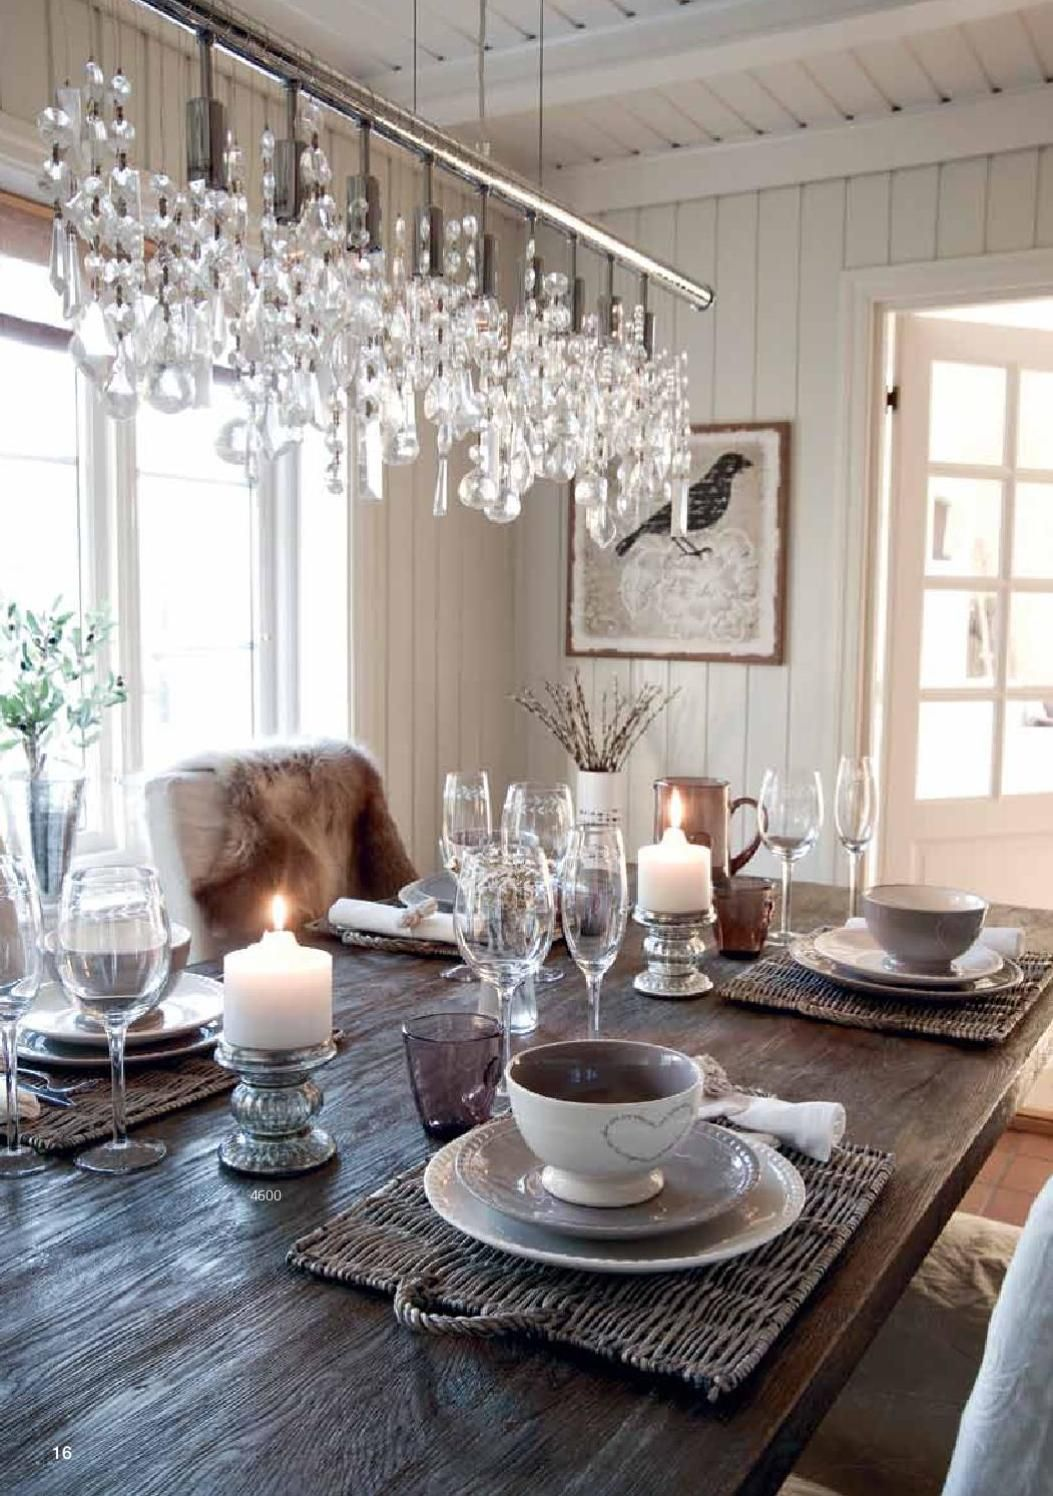 Dining Room Dark Romantic: Neutral, Dining Room, White Cream Dishes, Candels, Bird